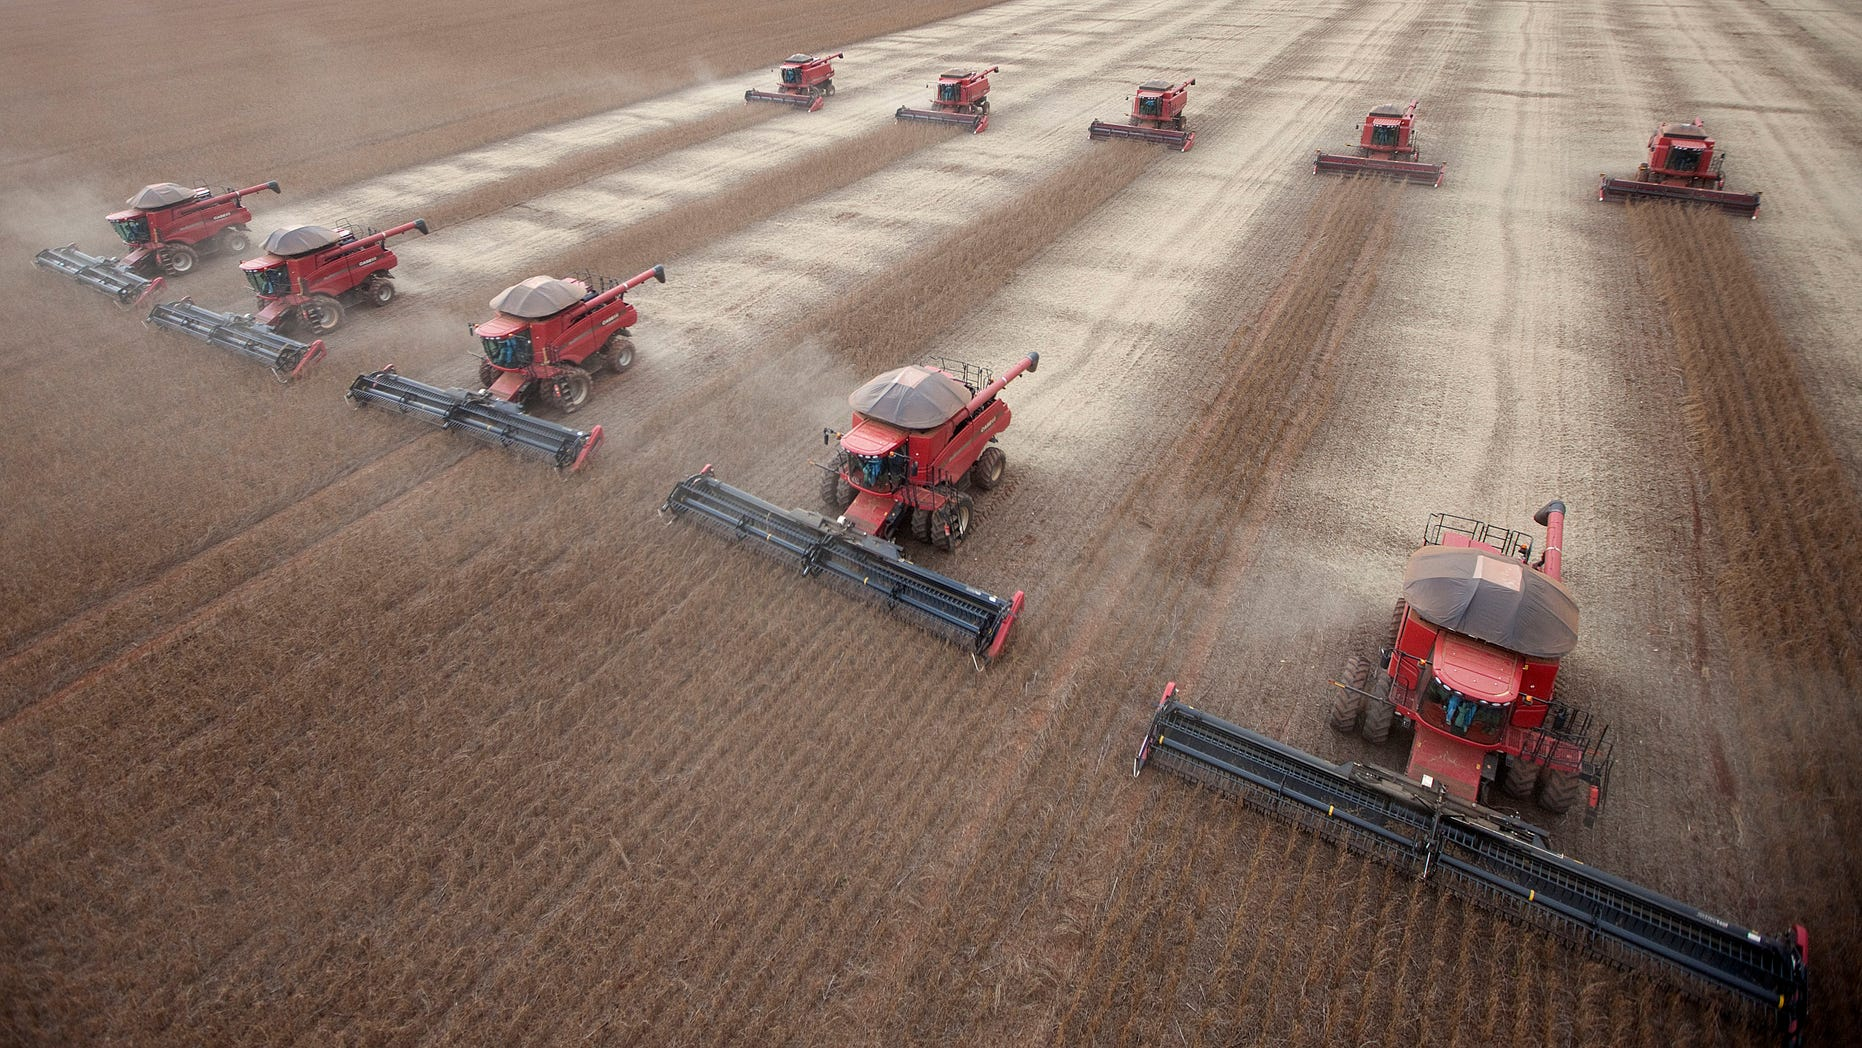 In this photo taken March 27, 2012, workers use combines to harvest soybeans in Tangara da Serra, State of Mato Grosso, Brazil. (AP Photo/Andre Penner)